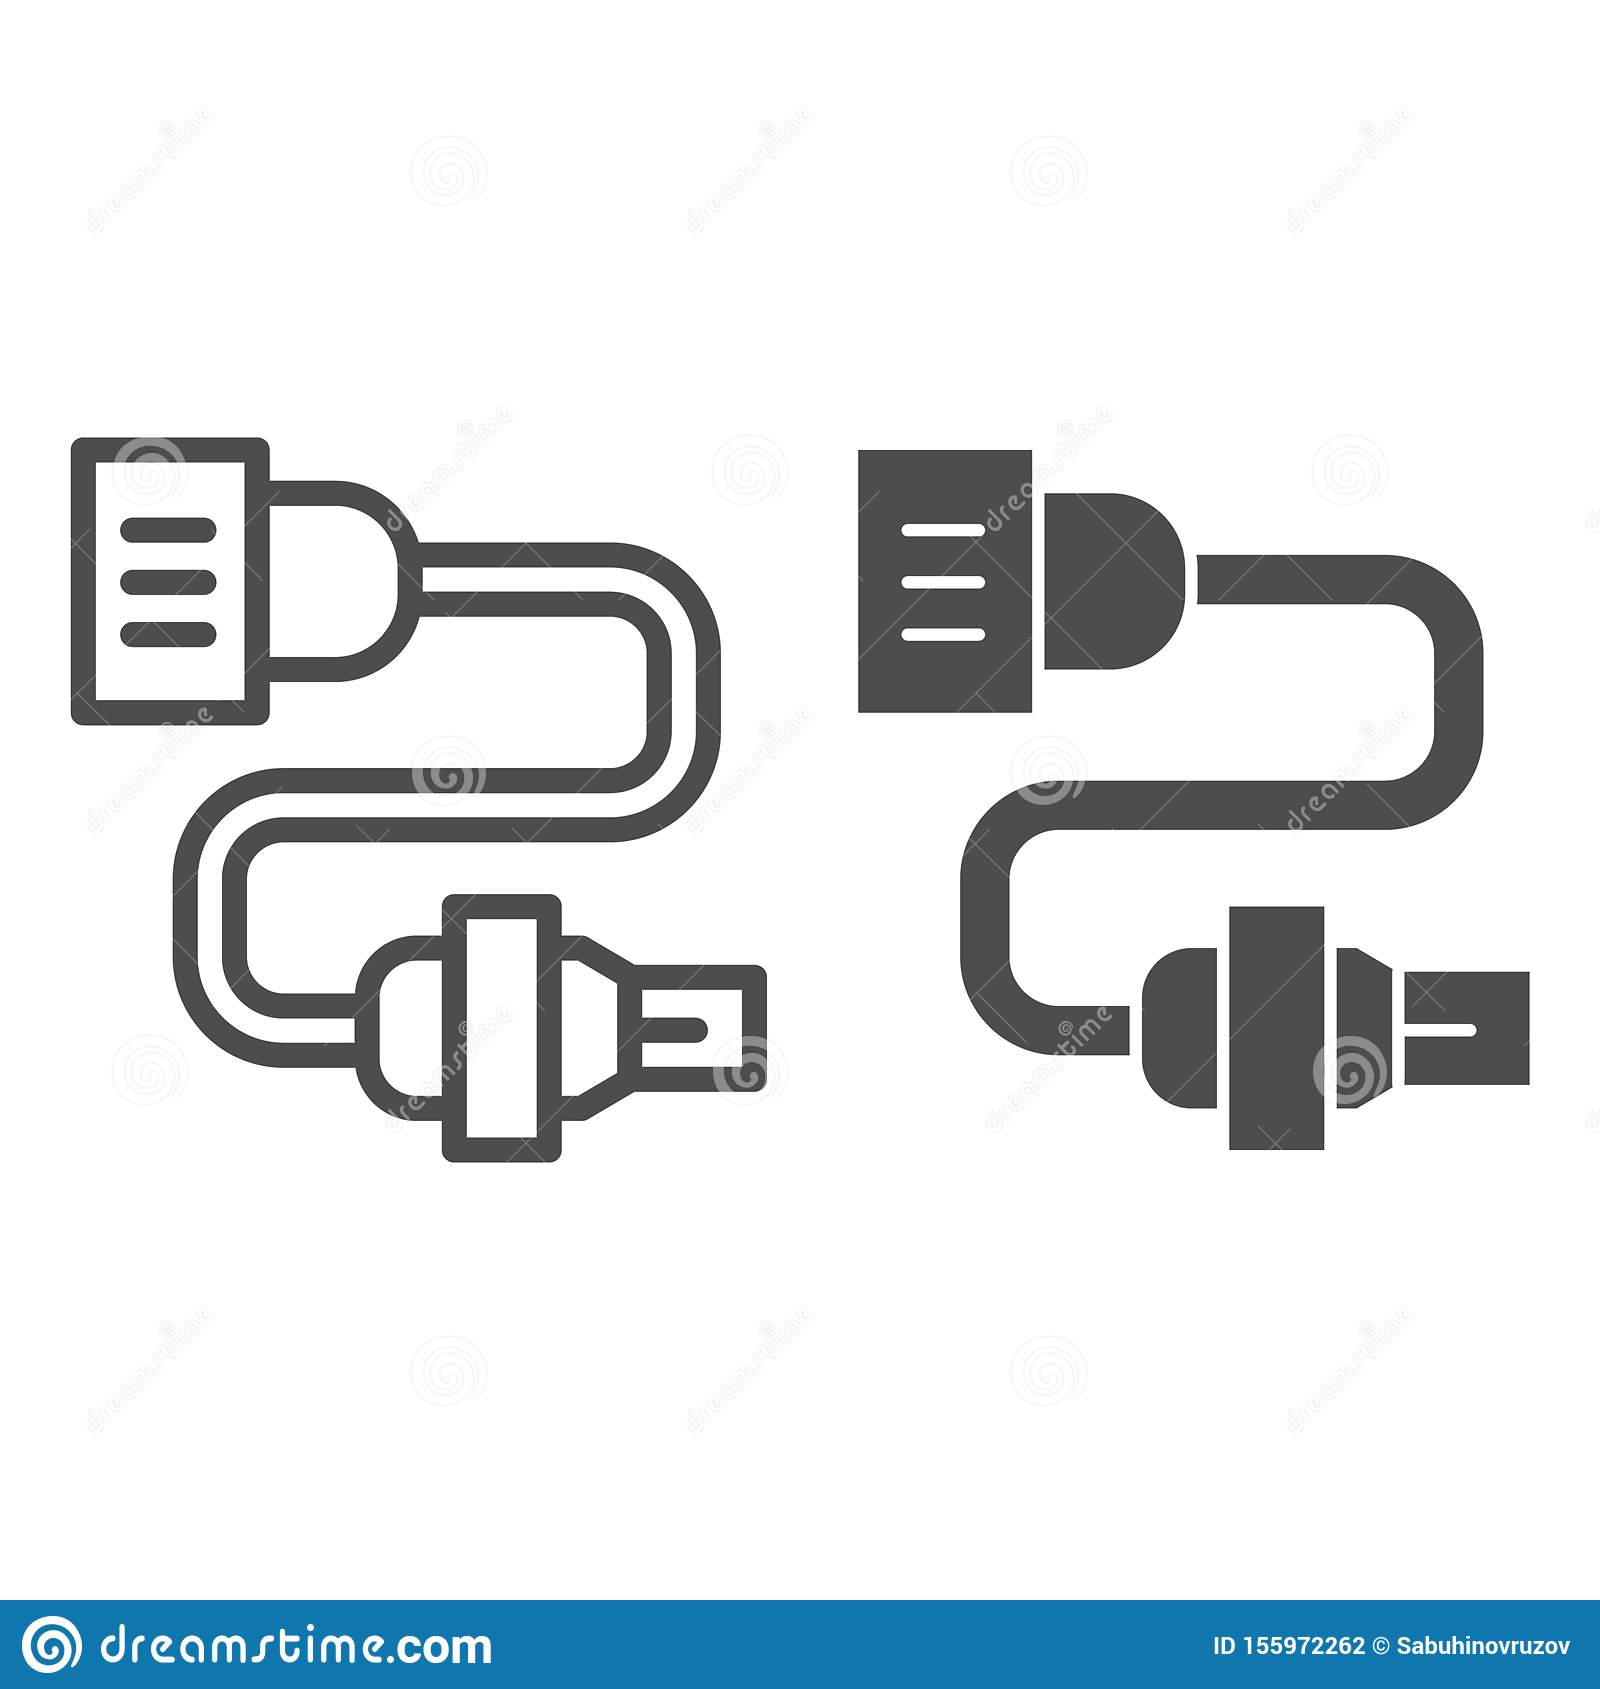 Car Electrical Wiring Line And Glyph Icon. Automobile Plug ... on electrical engineering, knob-and-tube wiring, wiring diagram, national electrical code, electric motor, circuit breaker, electrical conduit, junction box, three-phase electric power, distribution board, earthing system, power cord, electric power distribution, power cable, extension cord, ground and neutral, alternating current,